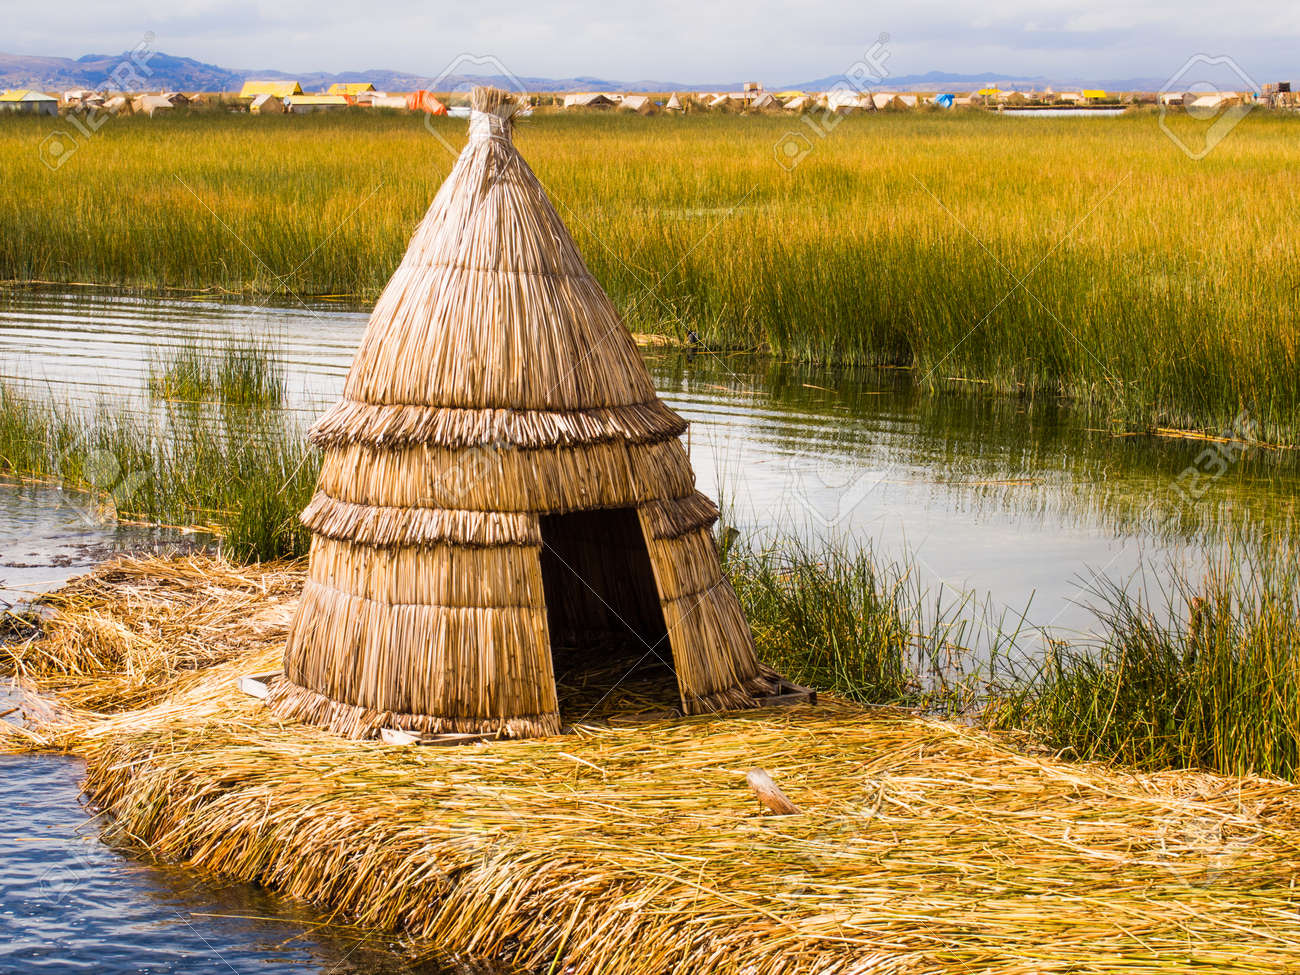 Primitive Reed Hut On Lake Titicaca In The Reed Islands Of Peru